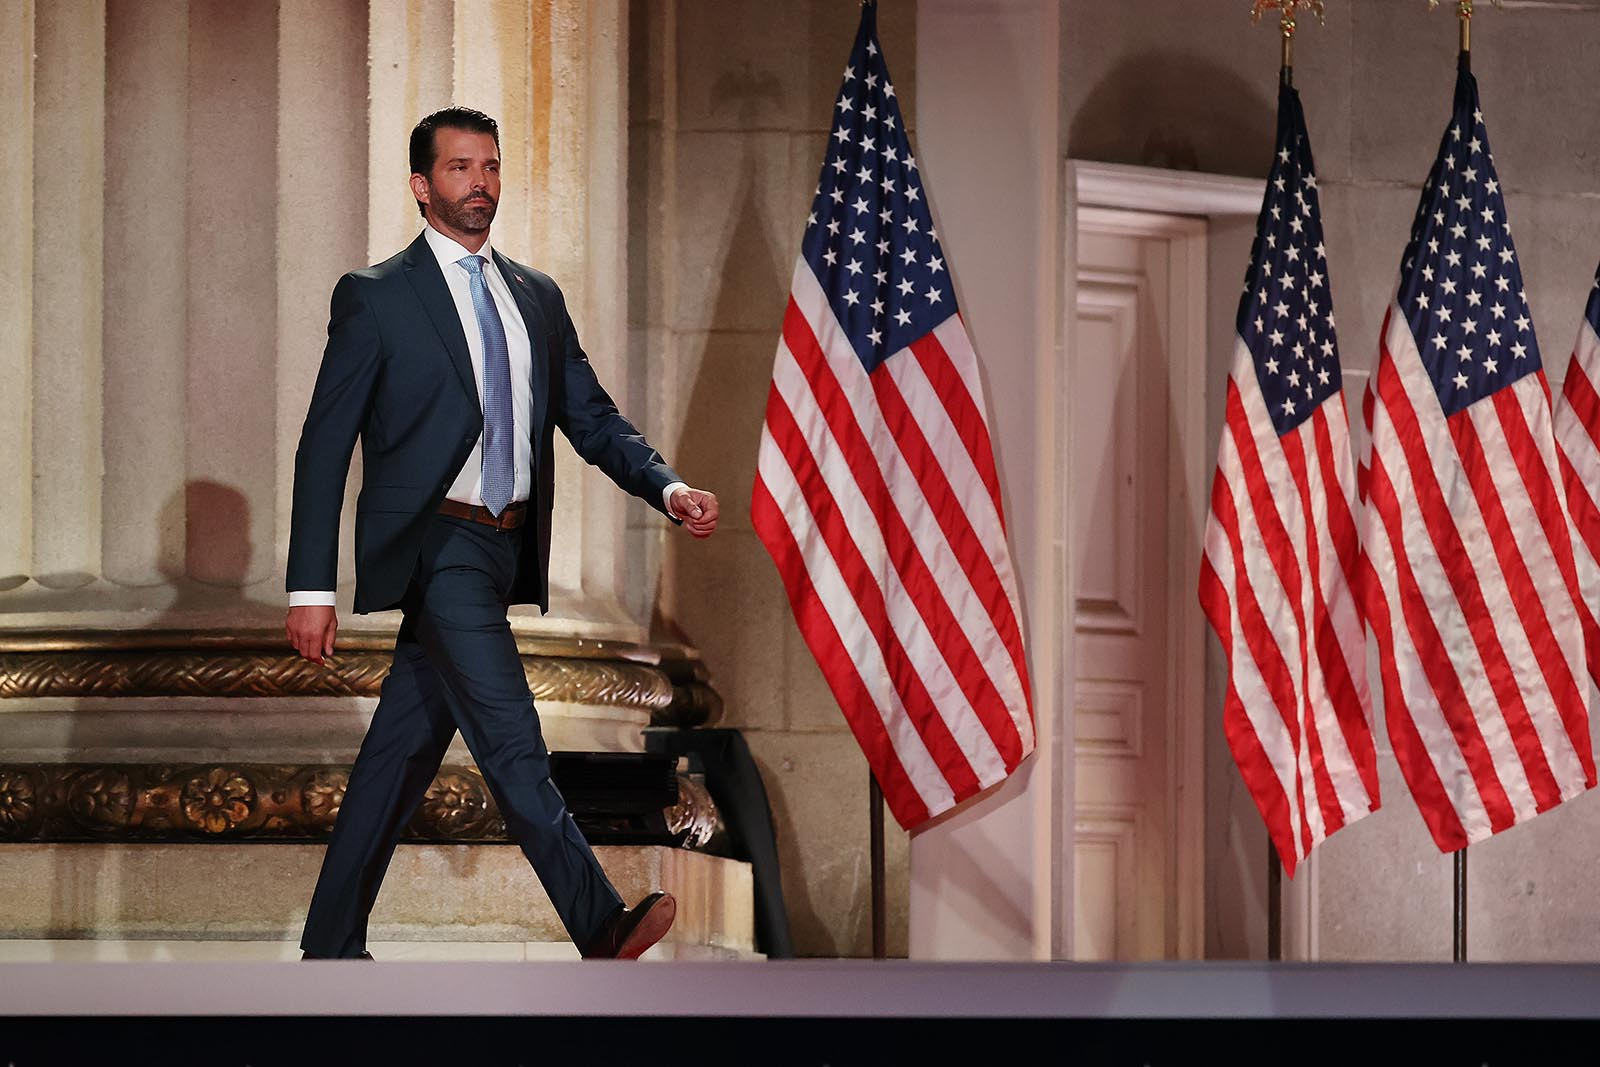 Donald Trump Jr. steps out on stage before pre-recording his address to the Republican National Convention at the Mellon Auditorium on August 24, in Washington.